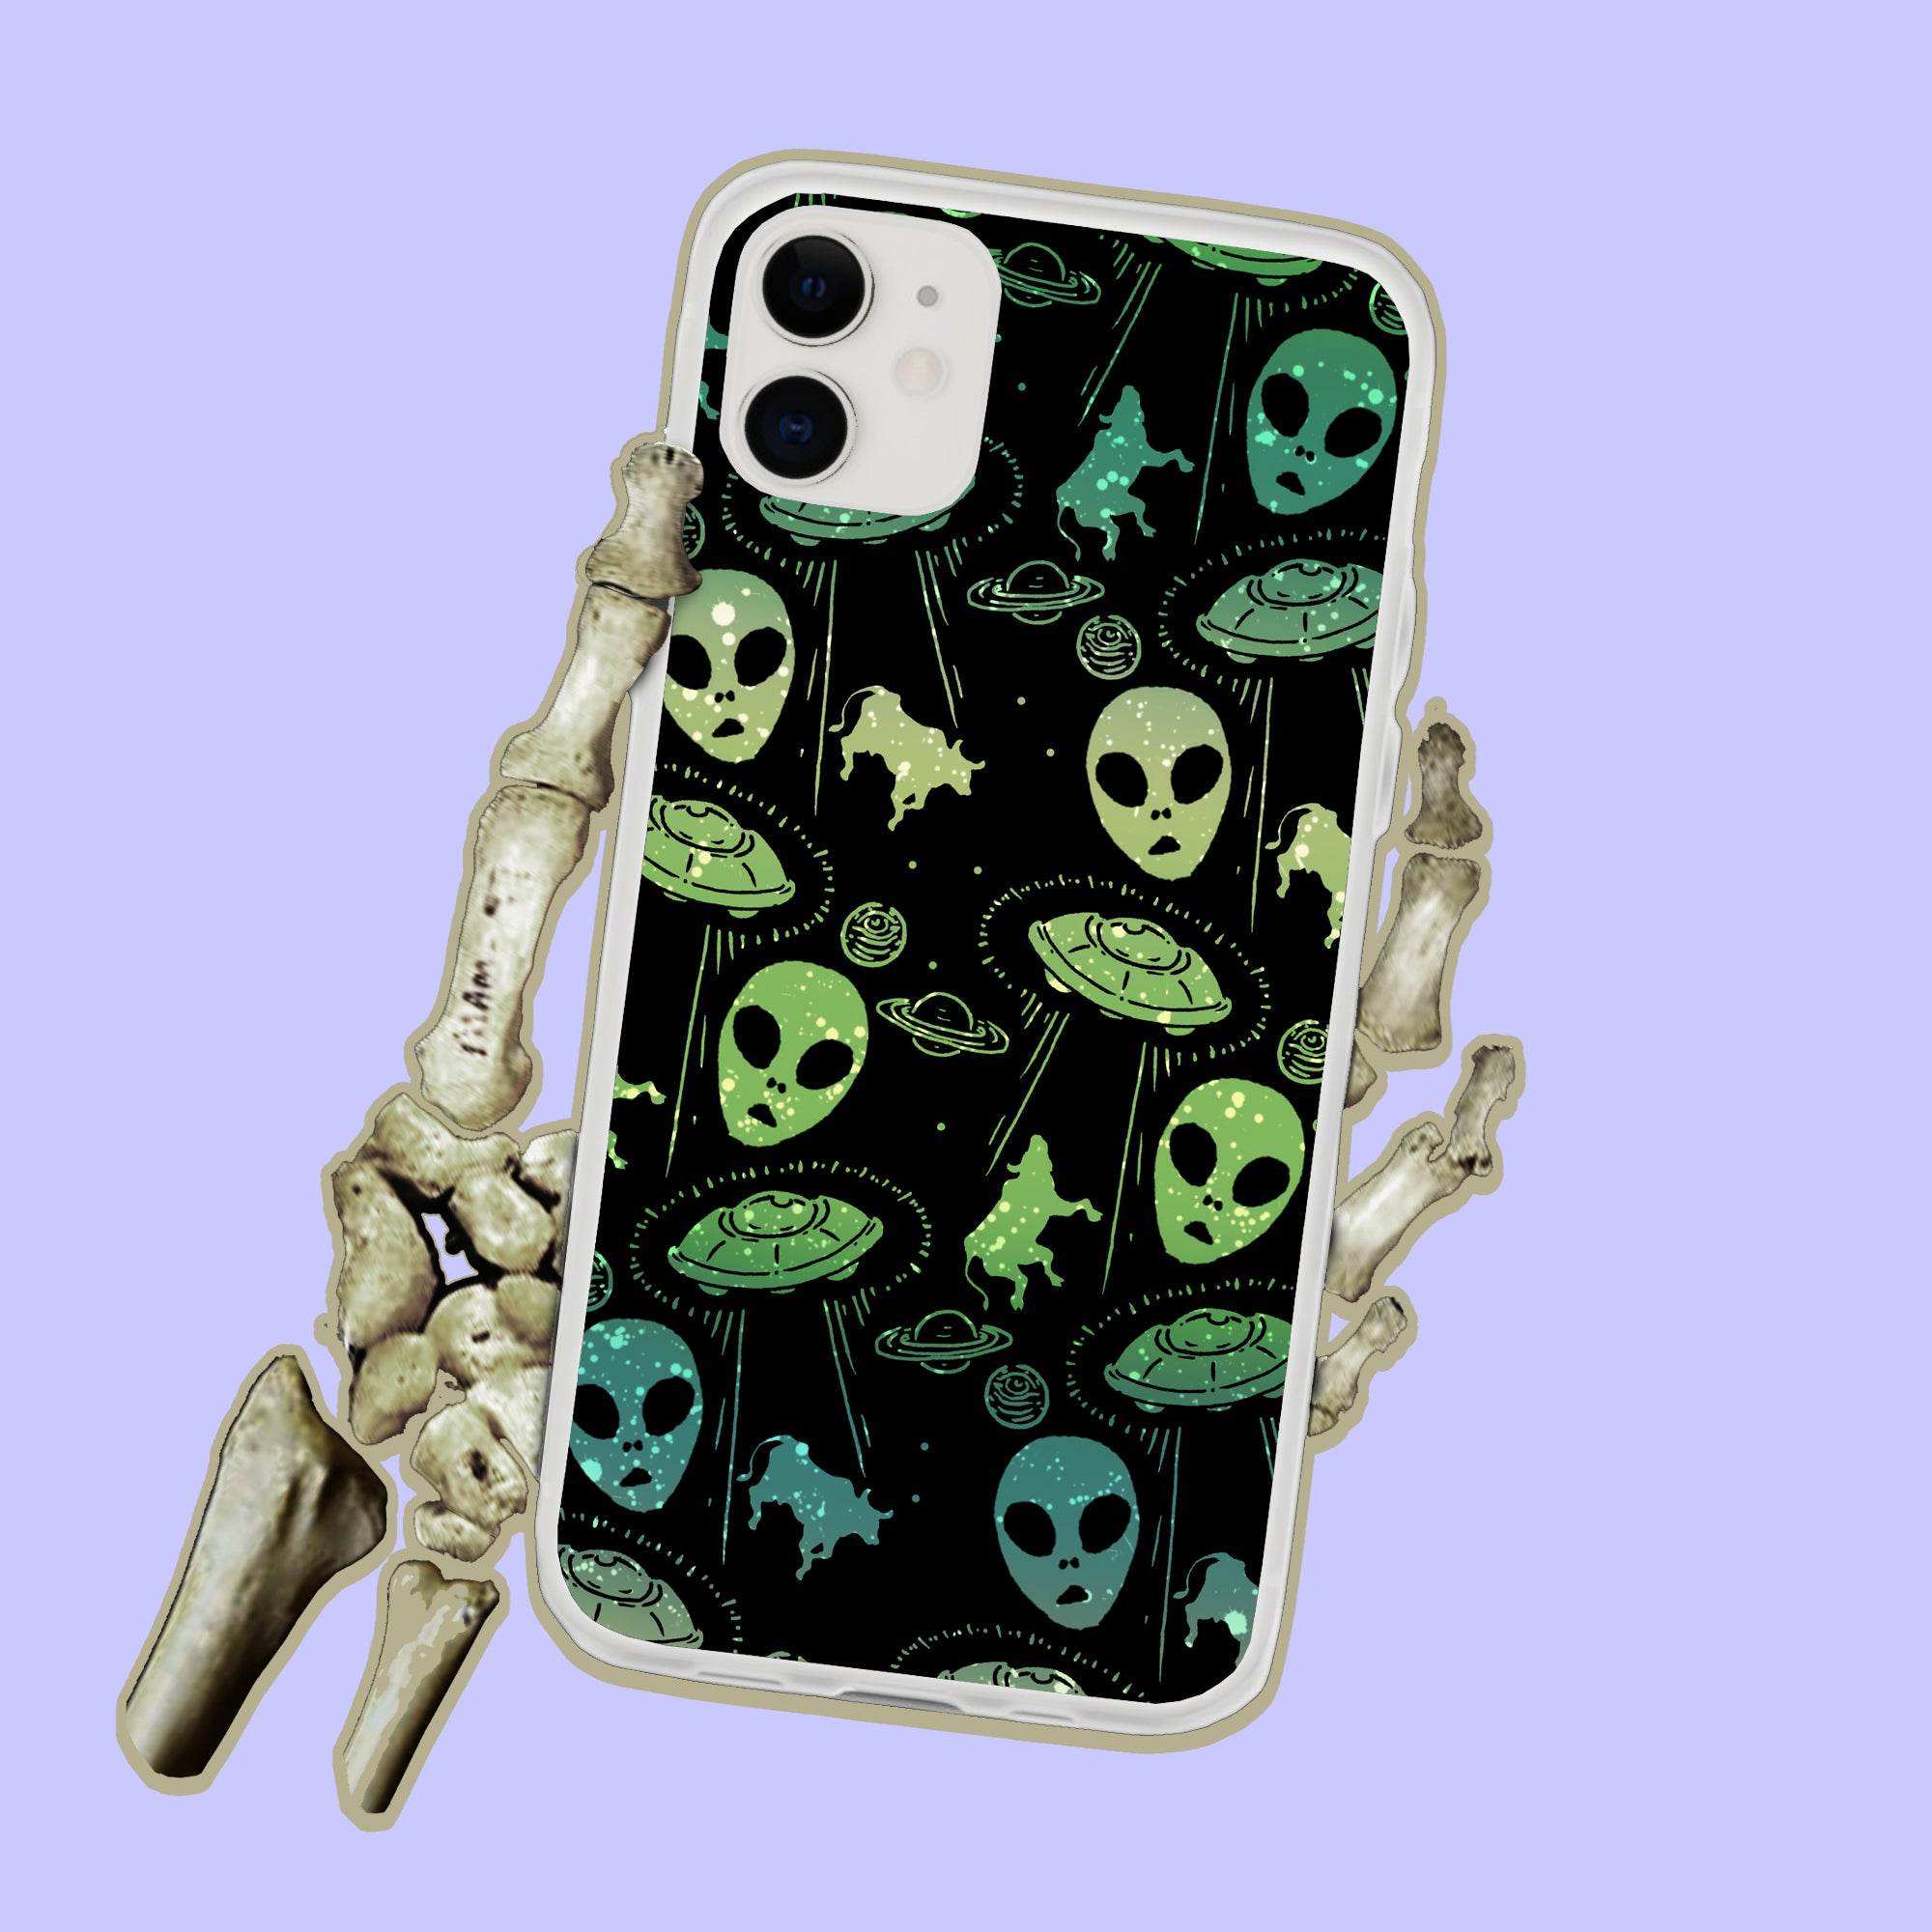 Aliens And UFOs iPhone Case